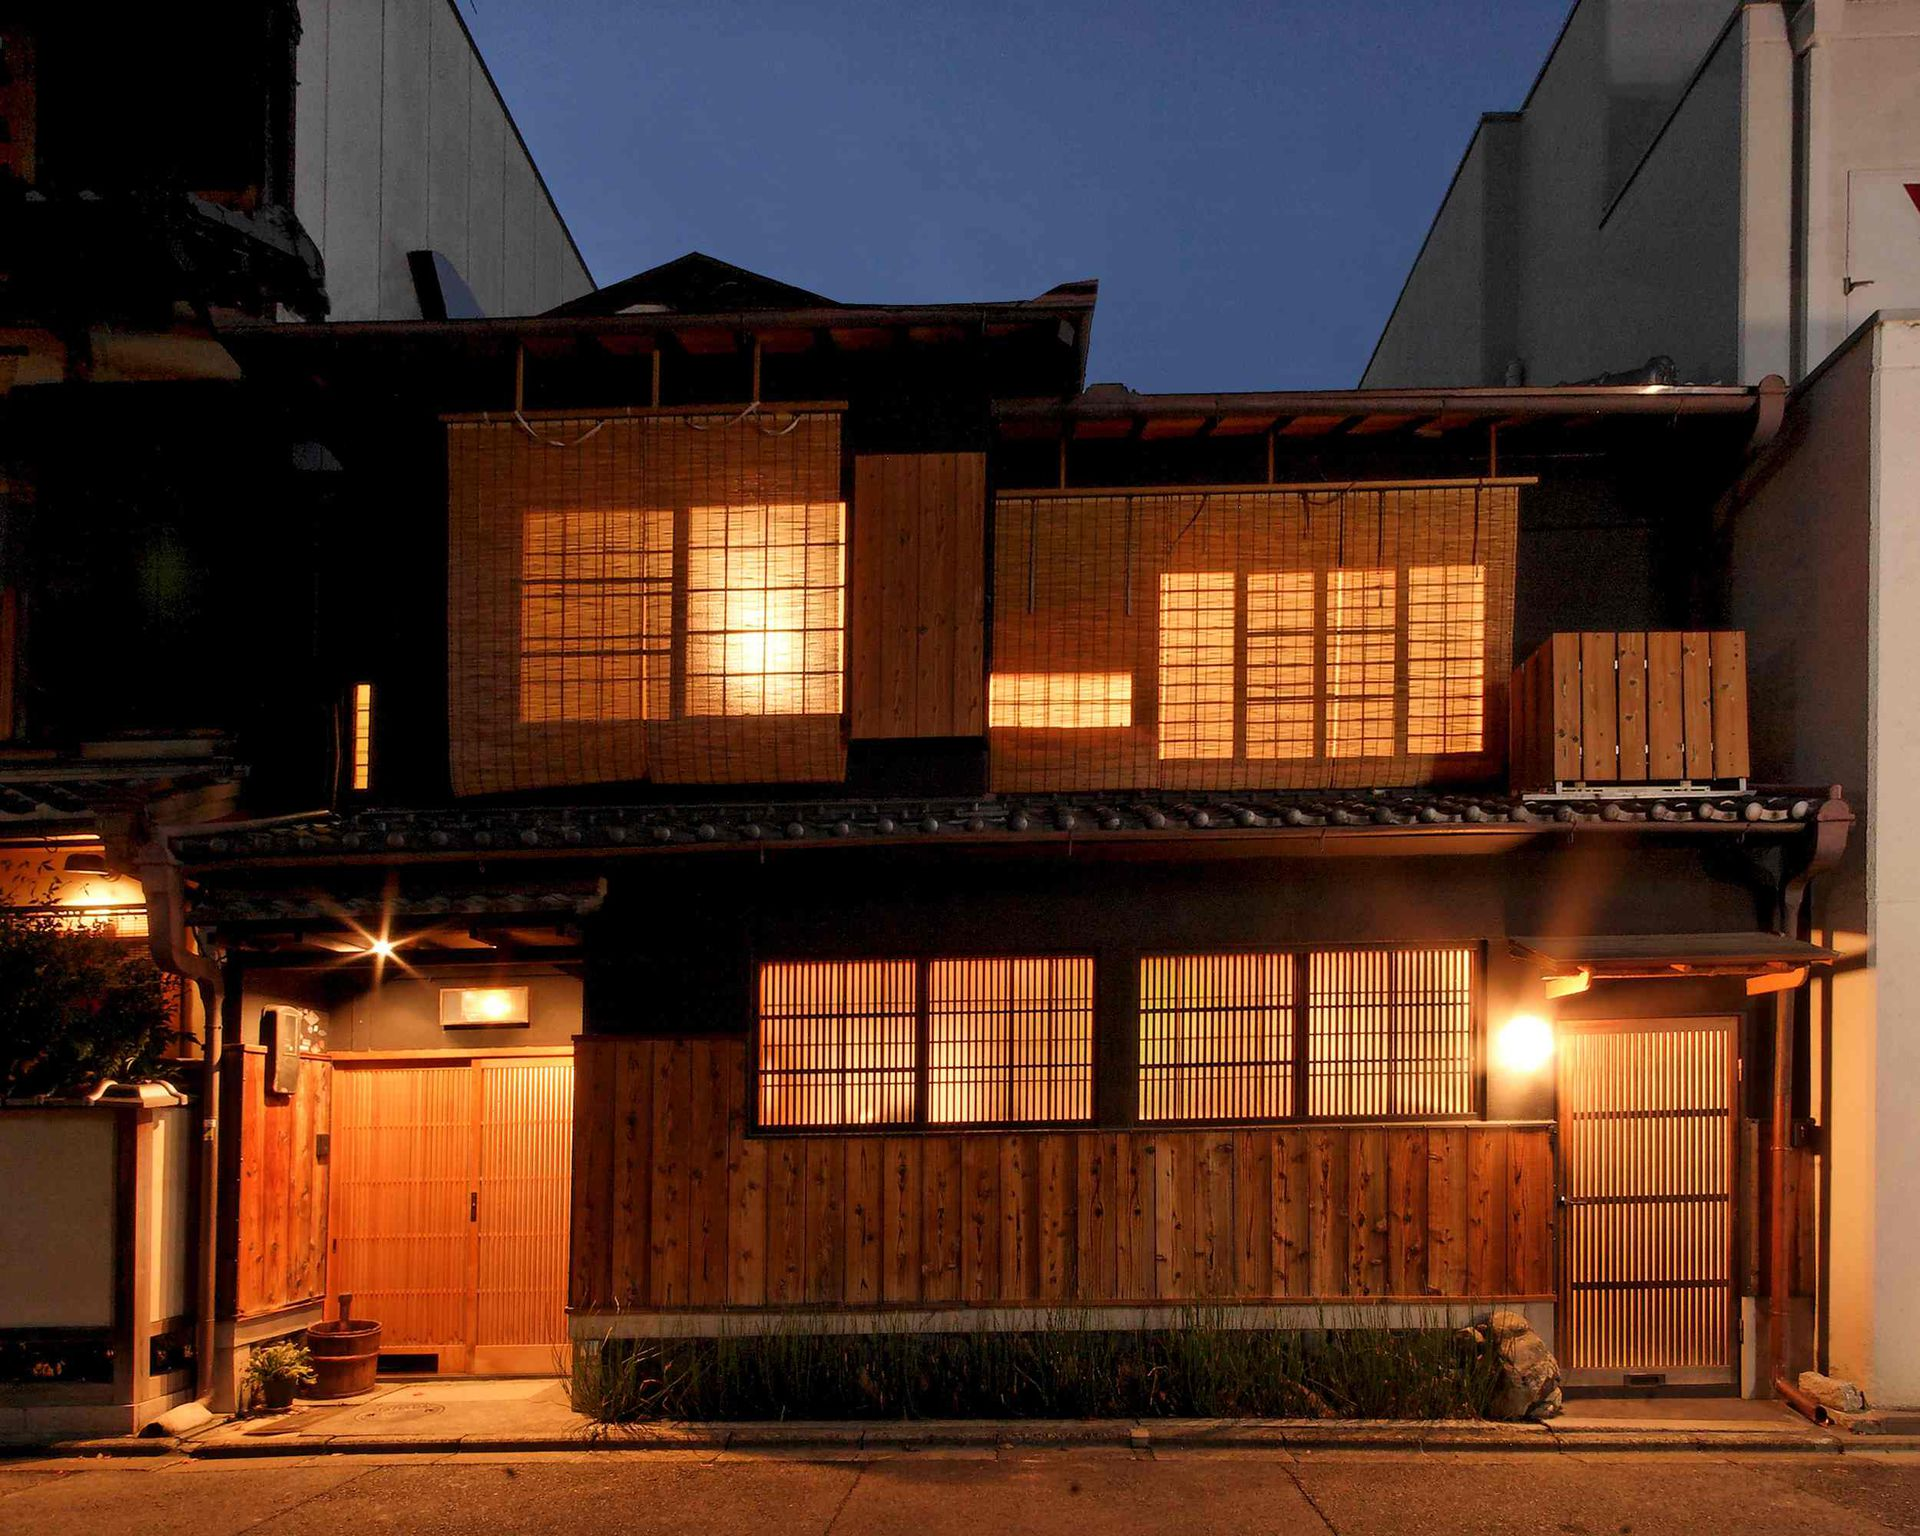 Traditional Japanese House in historic Kyoto Japan & Traditional Japanese House in historic Kyoto Japan - Home Exchange